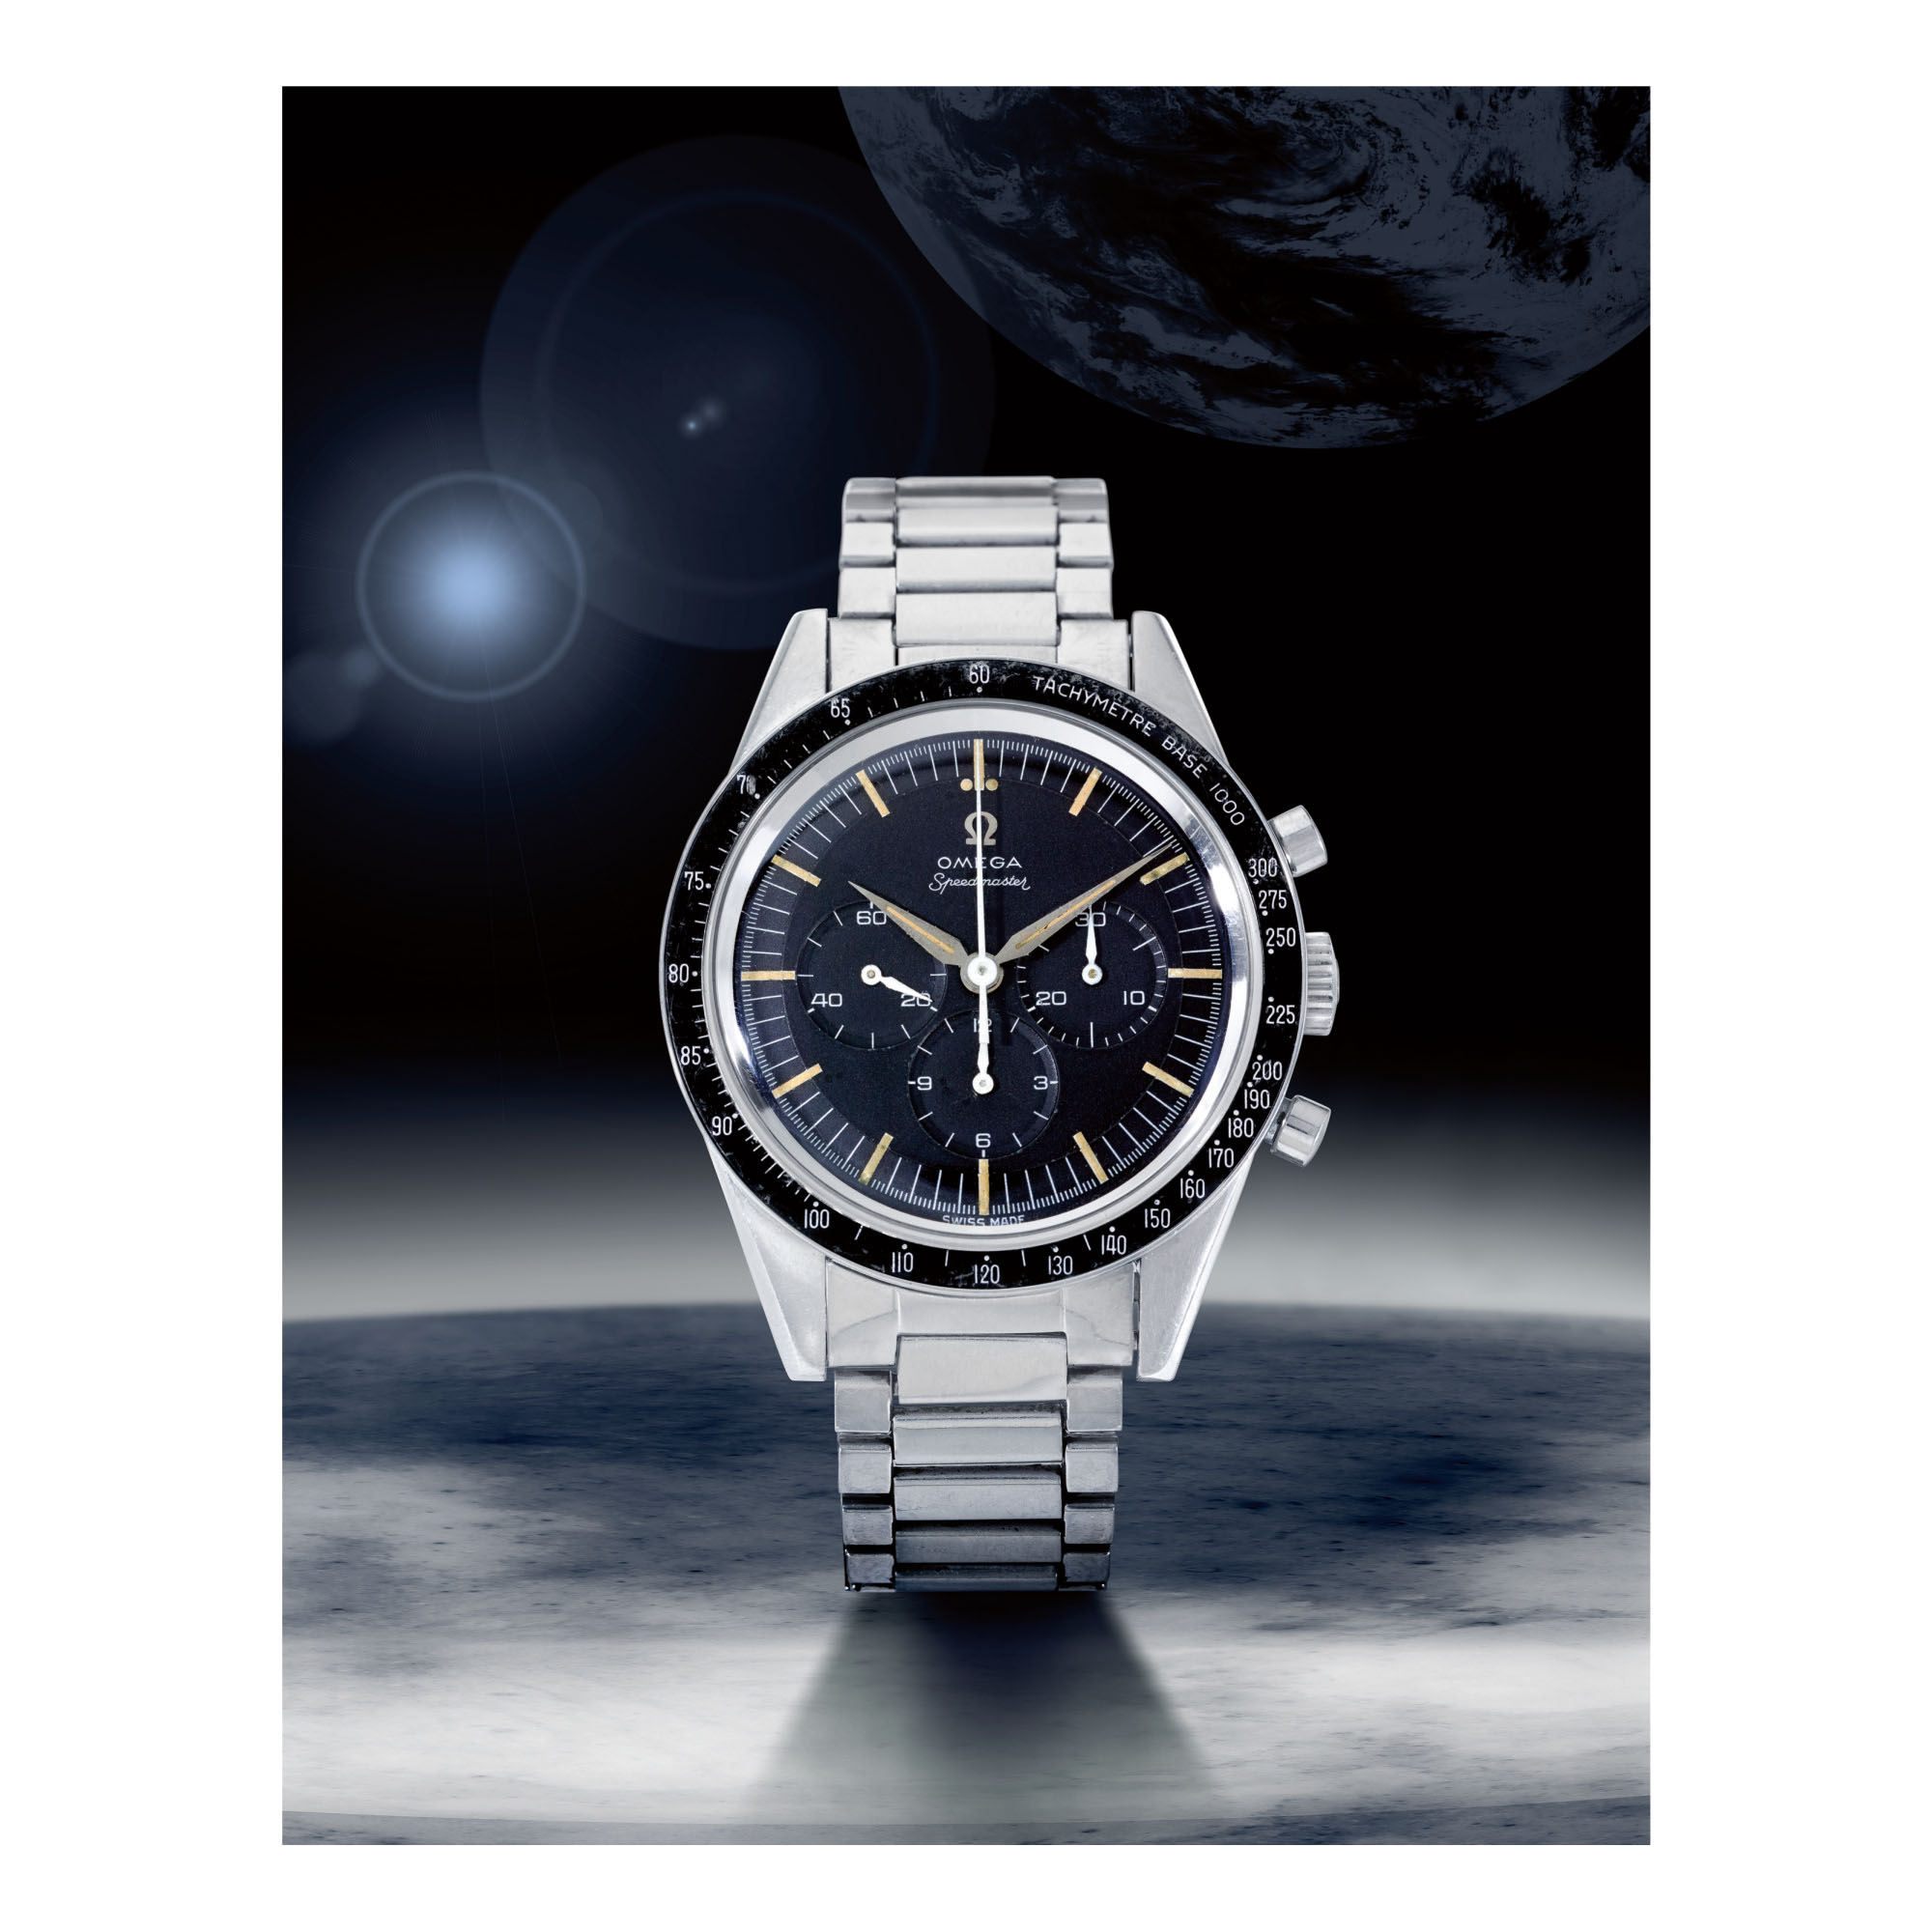 OMEGA | SPEEDMASTER REF 2998-2, A STAINLESS STEEL CHRONOGRAPH WRISTWATCH WITH BRACELET, MADE IN 1960